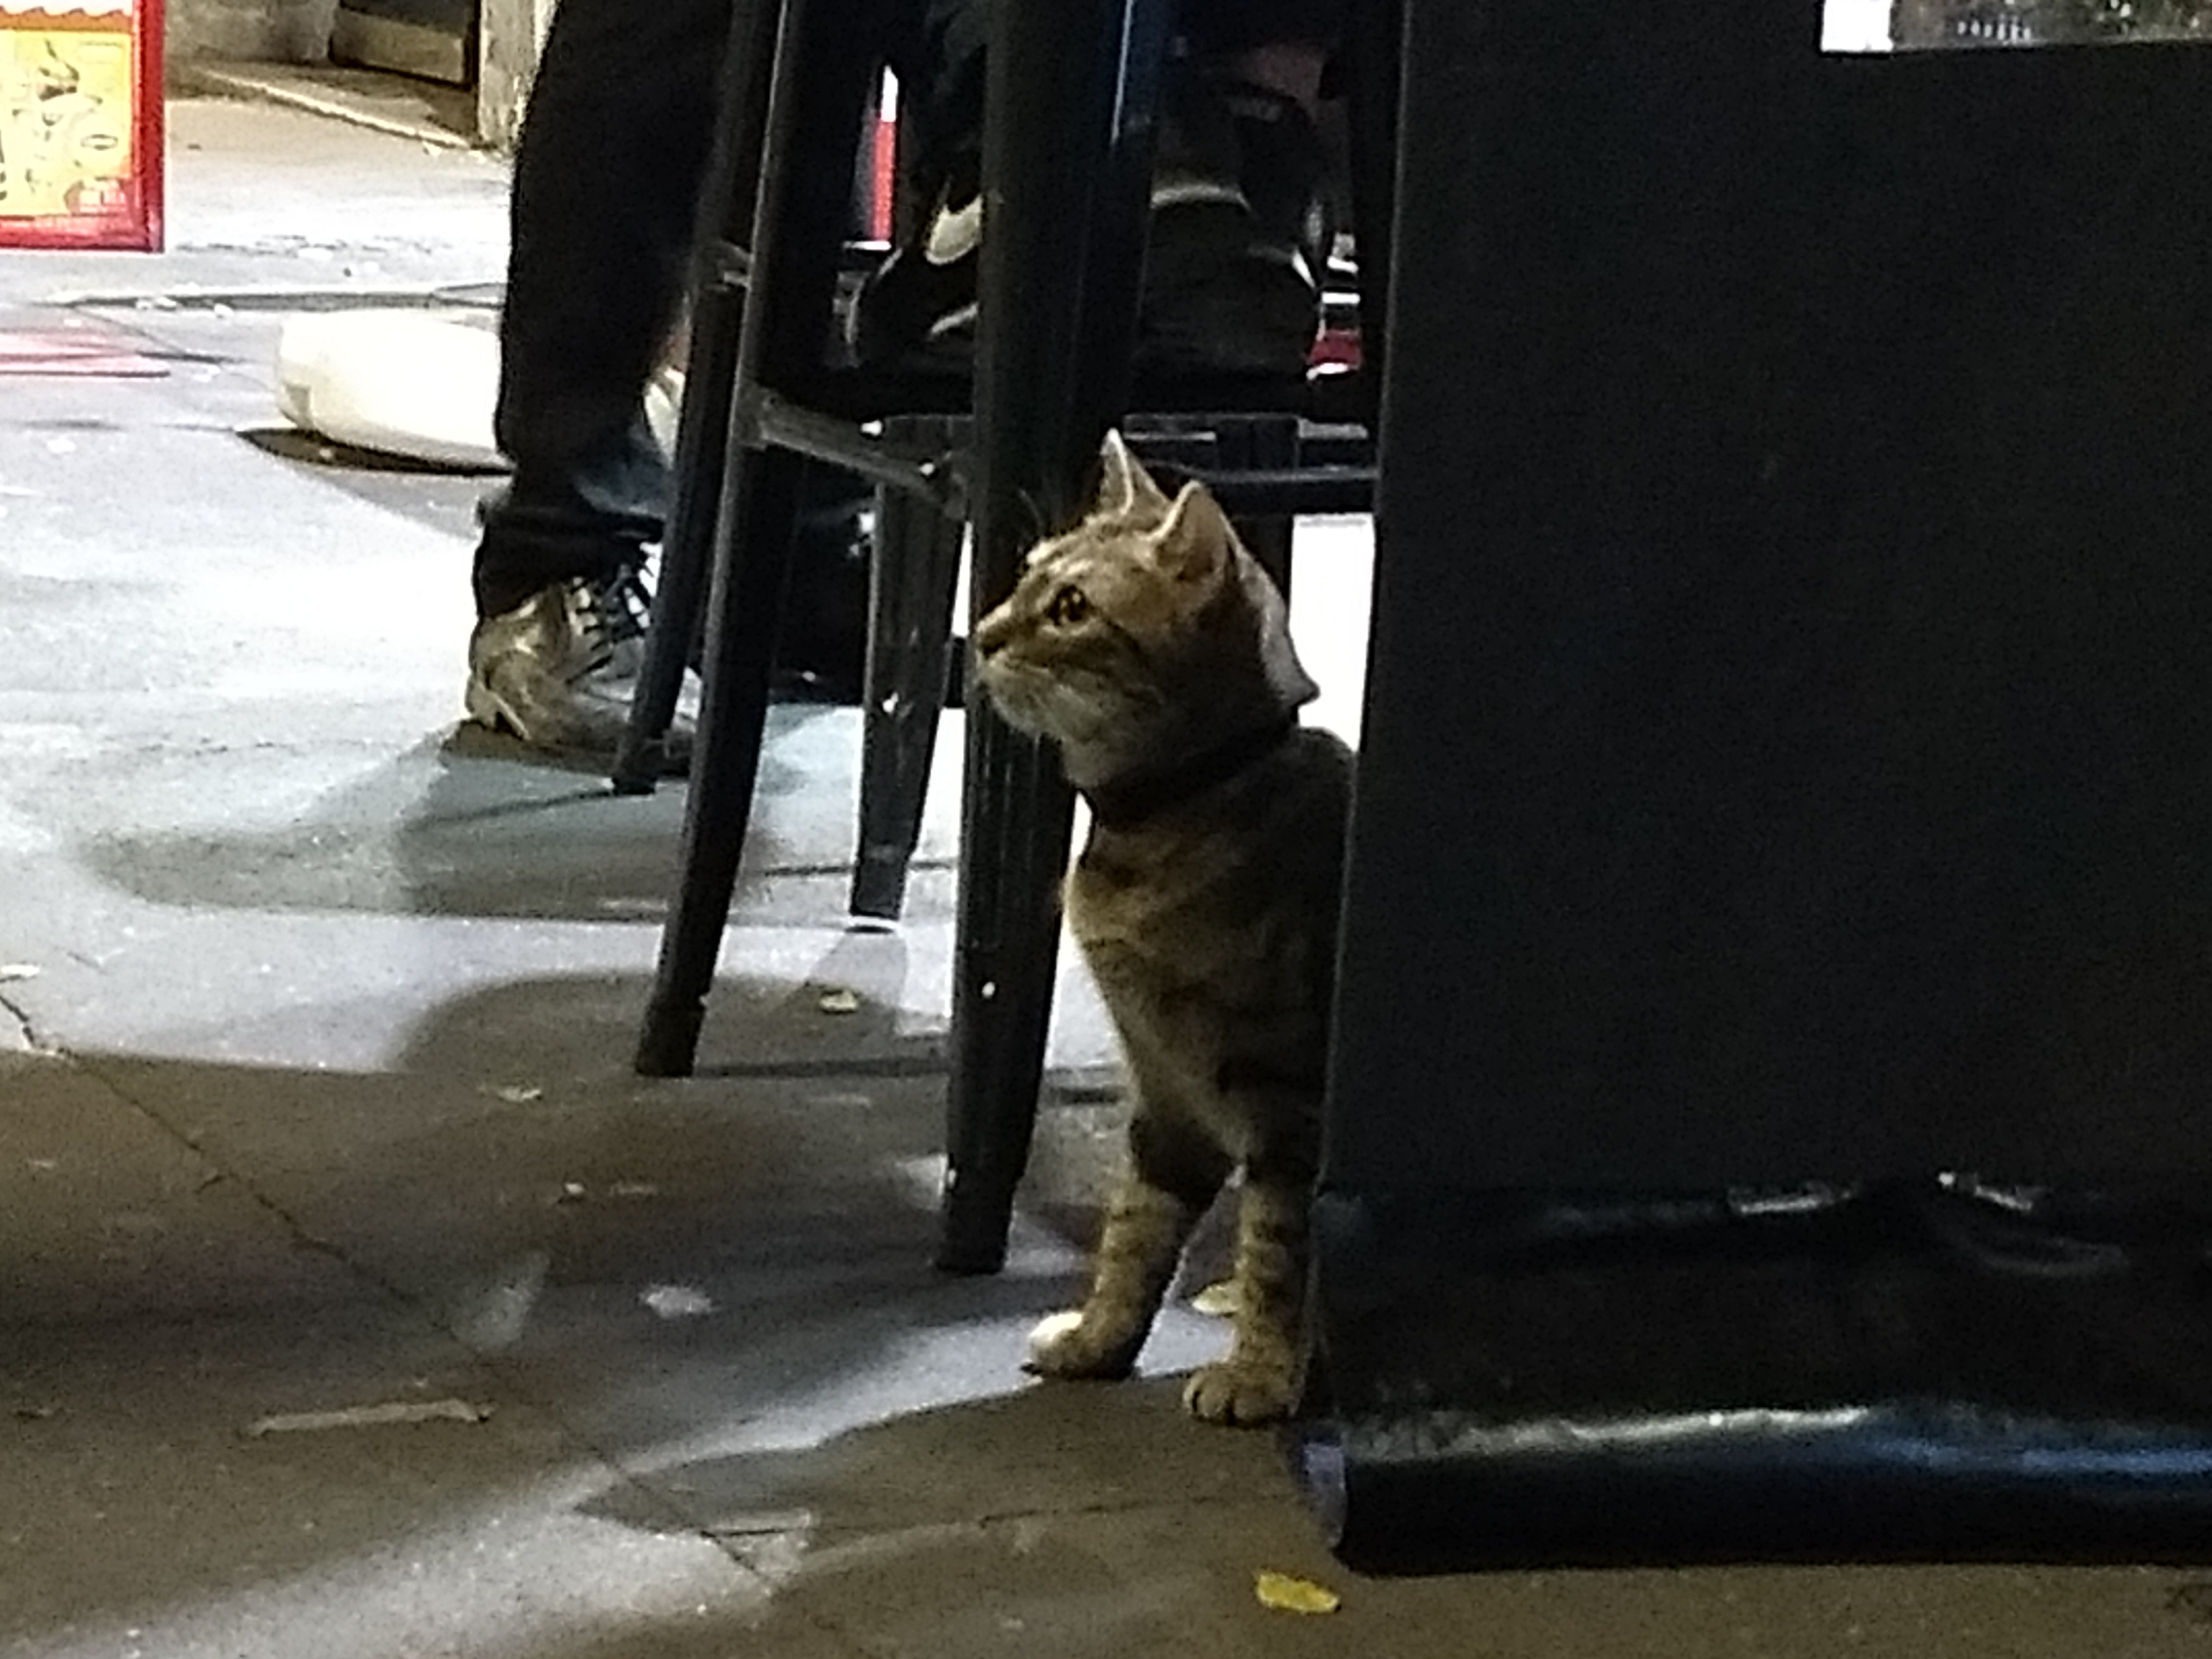 A tabby cat squatted on its hind legs underneath a chair on a concrete sidewalk